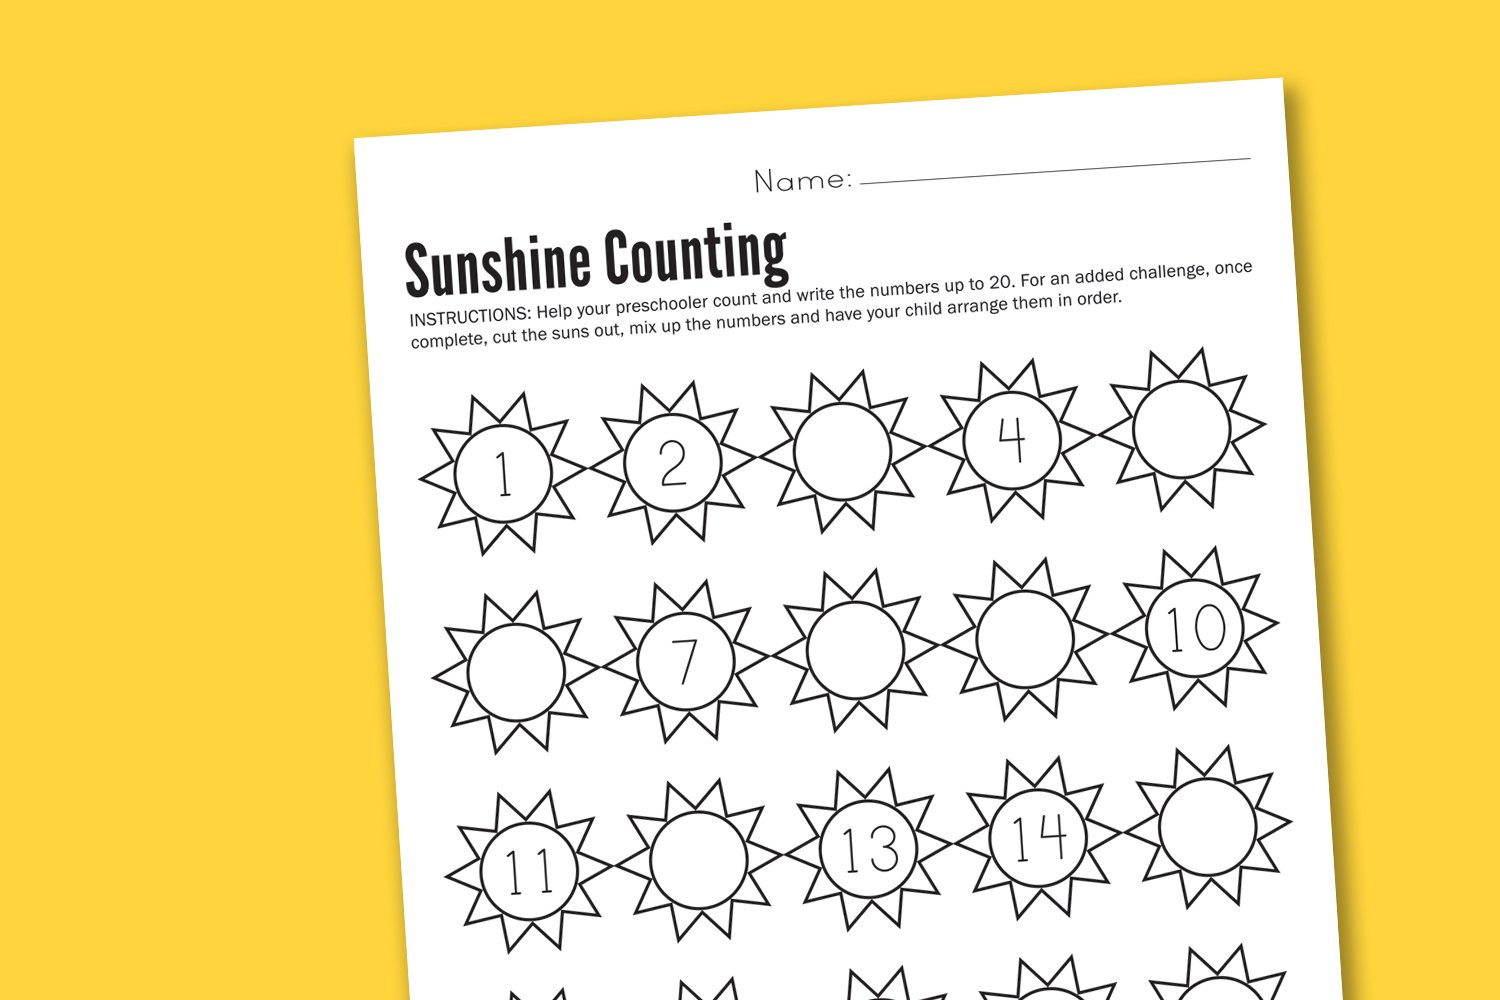 It\'s A Sunshiny Worksheet Wednesday! - Paging Supermom